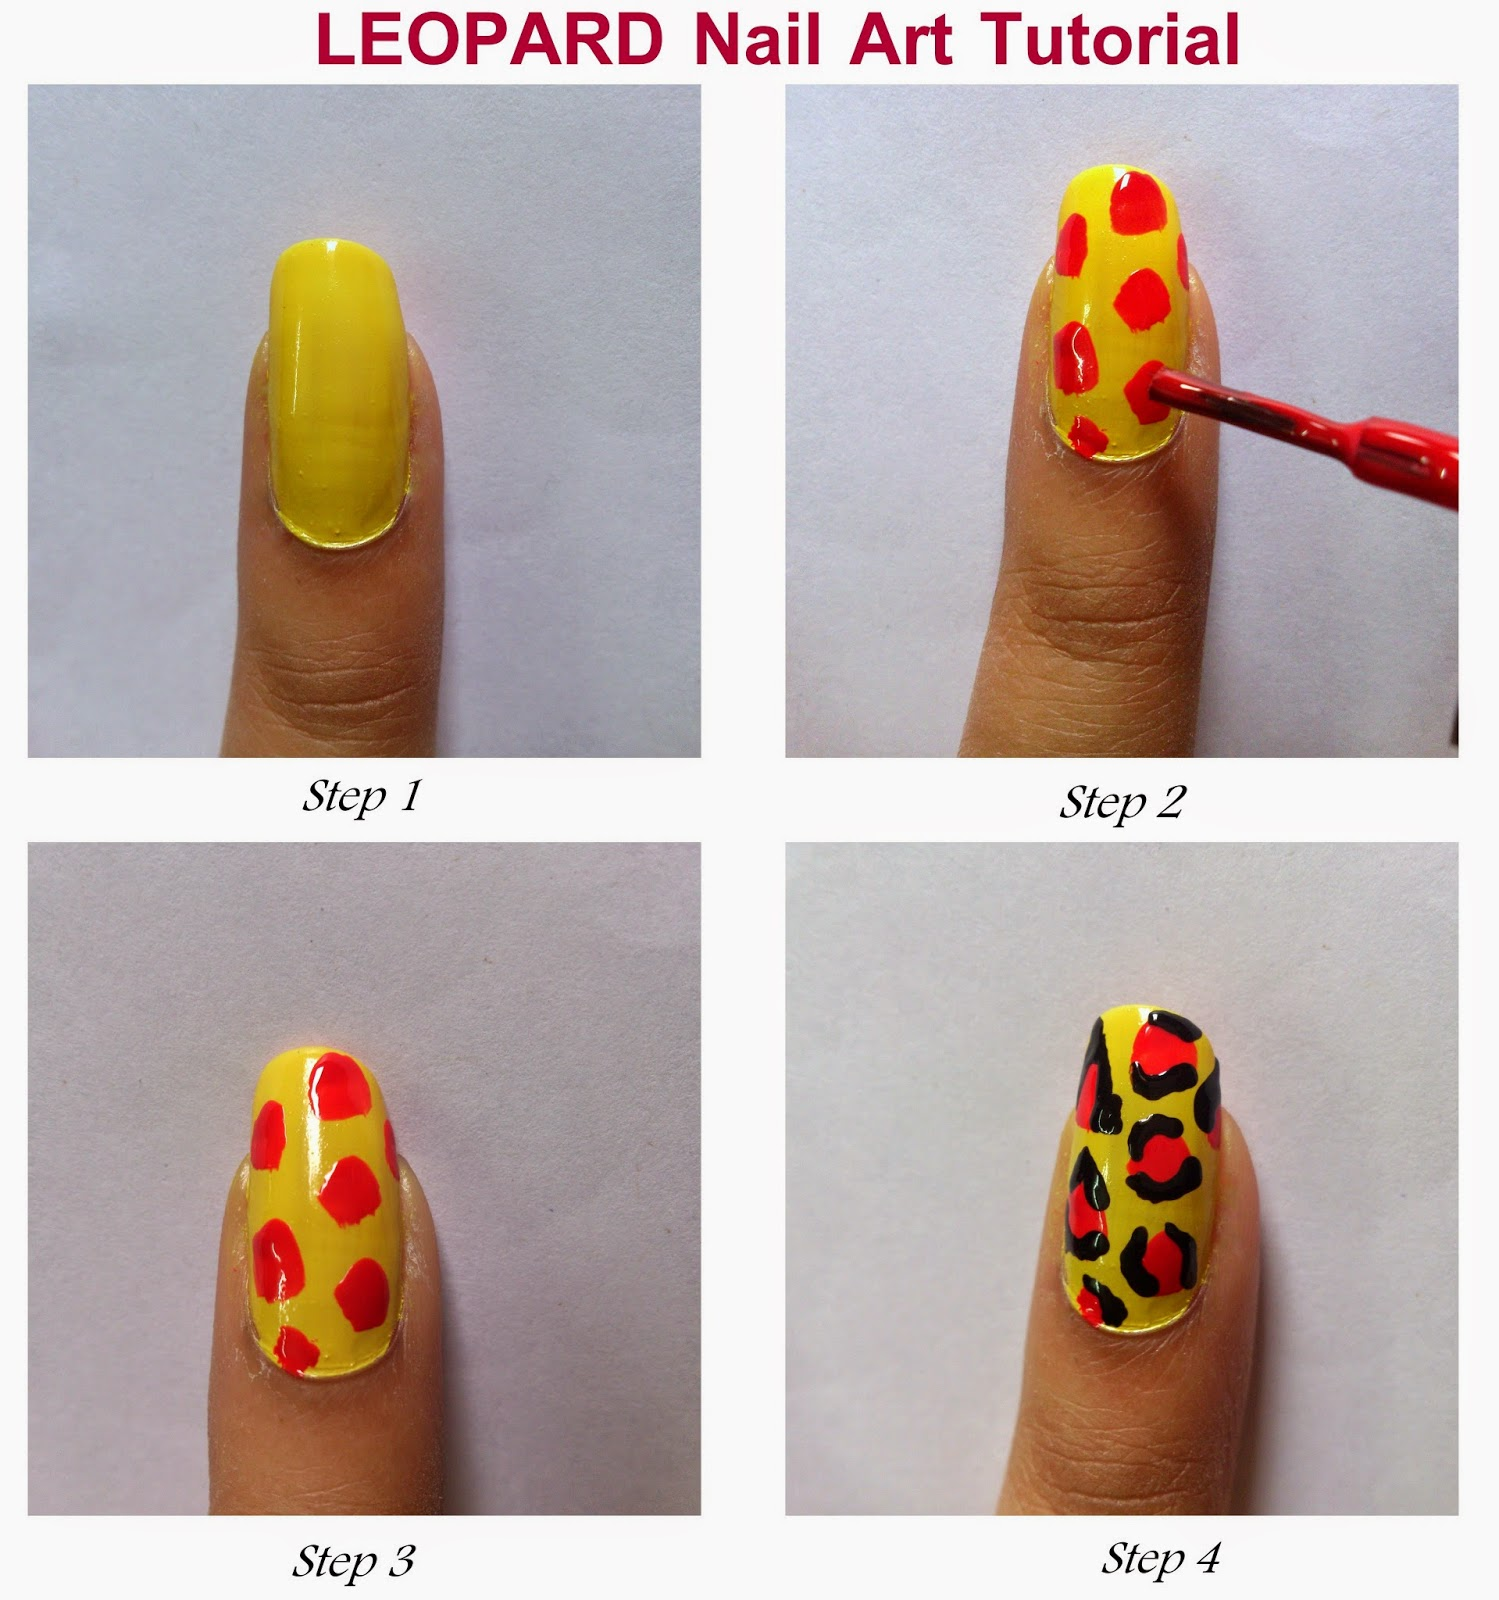 Nail art designs step by step at home | Nail Art and Tattoo Design ...